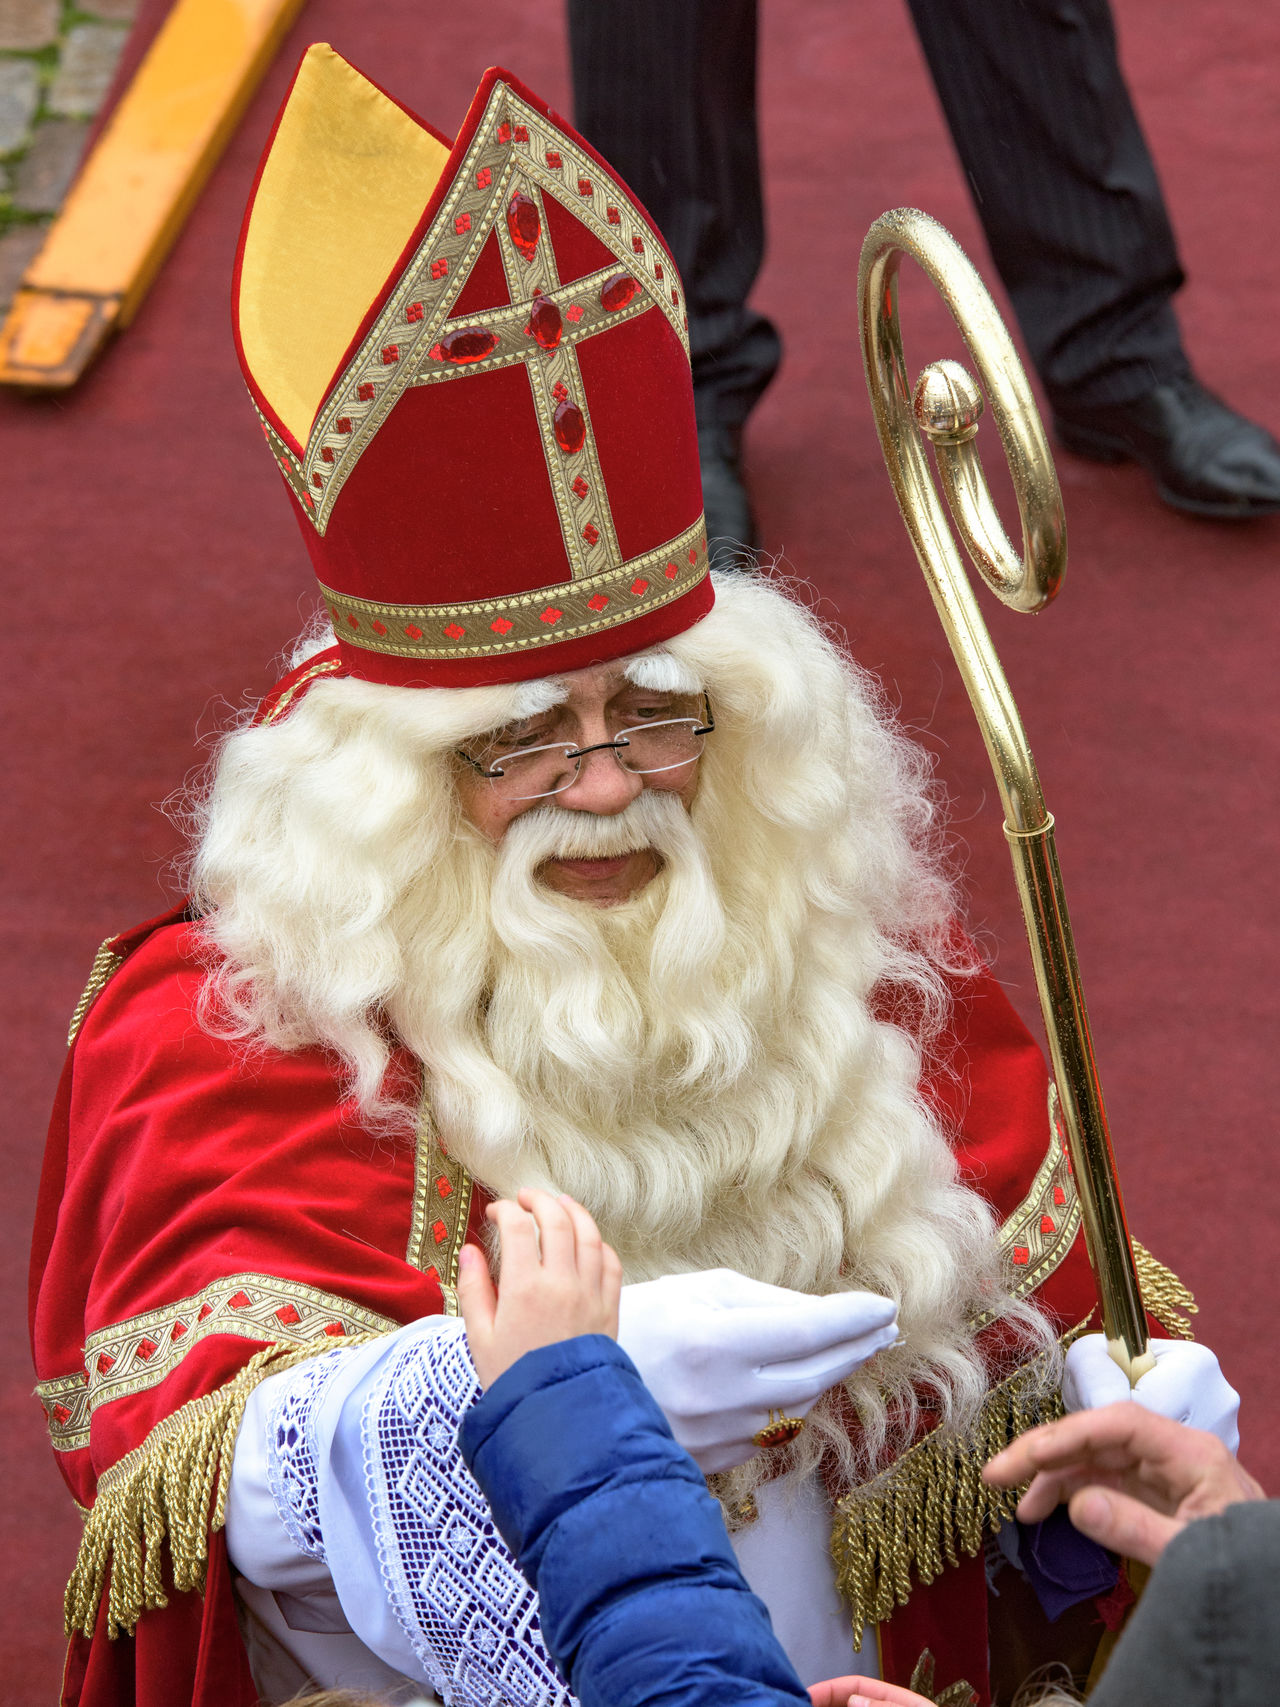 Children Festive Season Happy Head And Shoulders How You Celebrate Holidays Intochtsinterklaas Kinderenaanhetwater Long Hair Netherlands Saint Santa Claus Sinterklaas St. Nicolas Zwarte Piet The Culture Of The Holidays The Festive Season